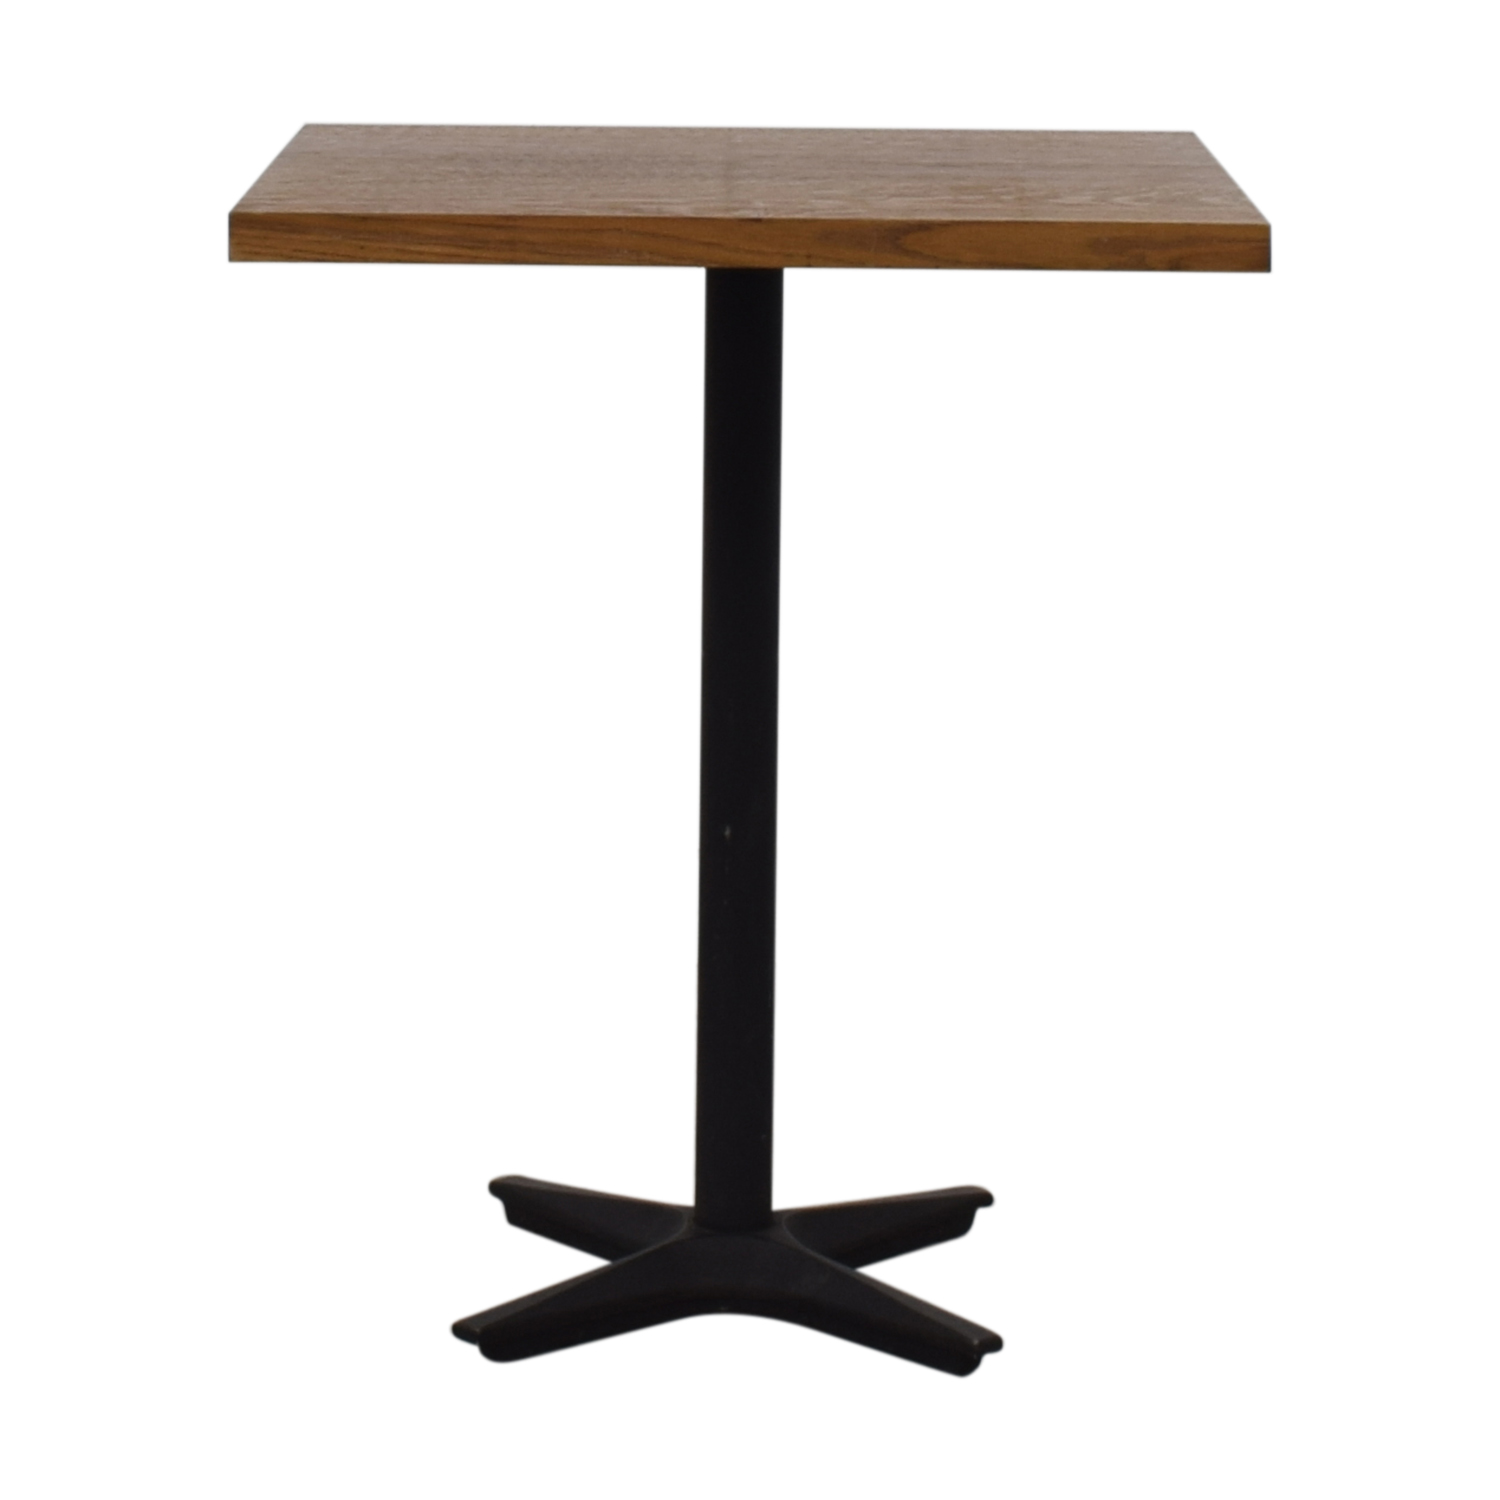 Small Wood Square Table brown